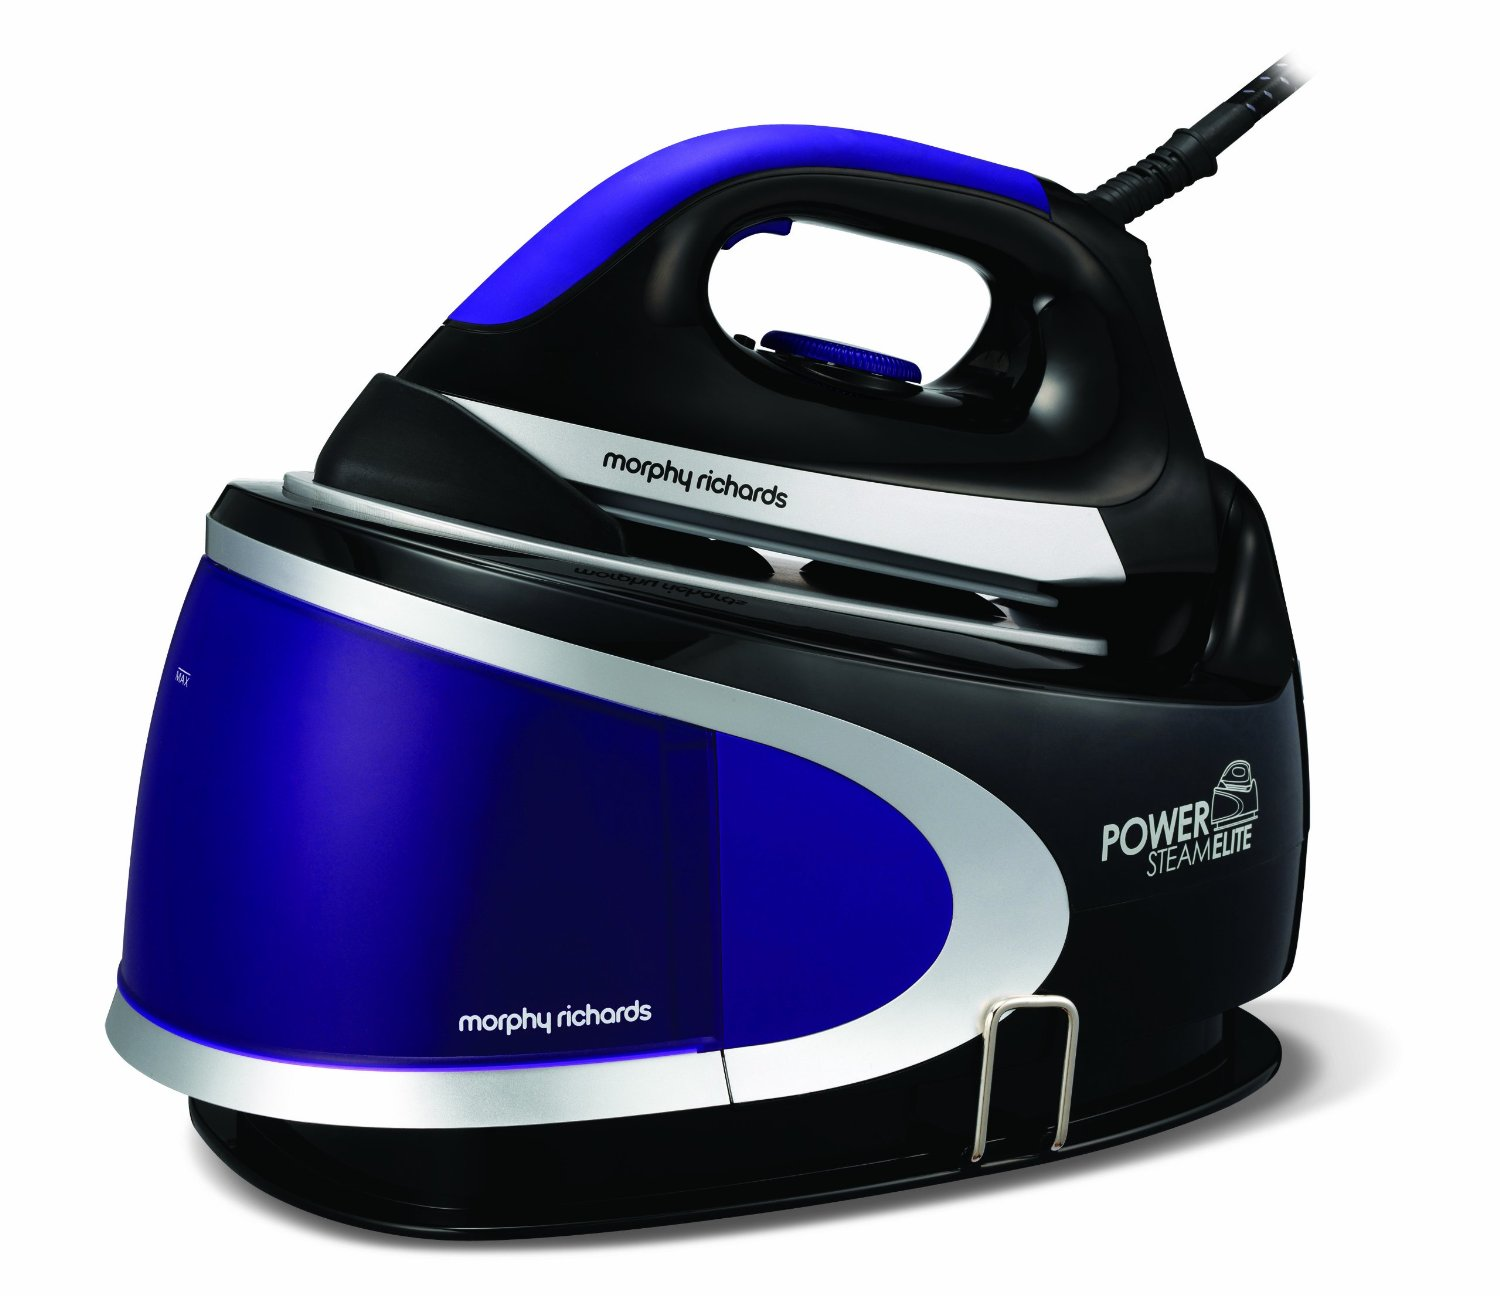 Morphy Richards Power Steam Elite 330004